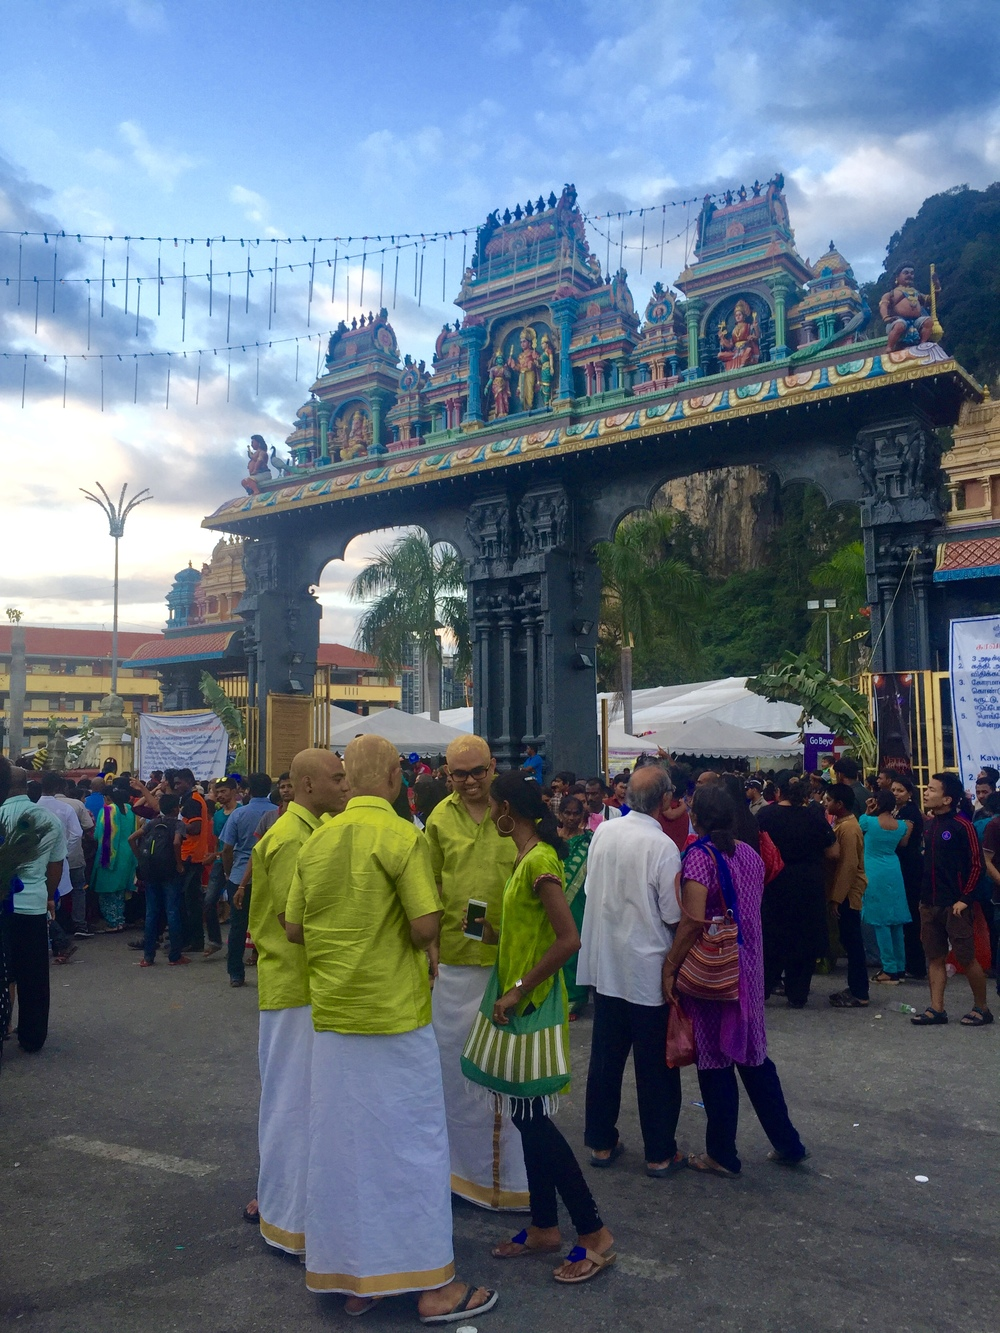 Approaching the entrance to Batu Caves in Gombok, Malaysia - a group of newly shaven men.